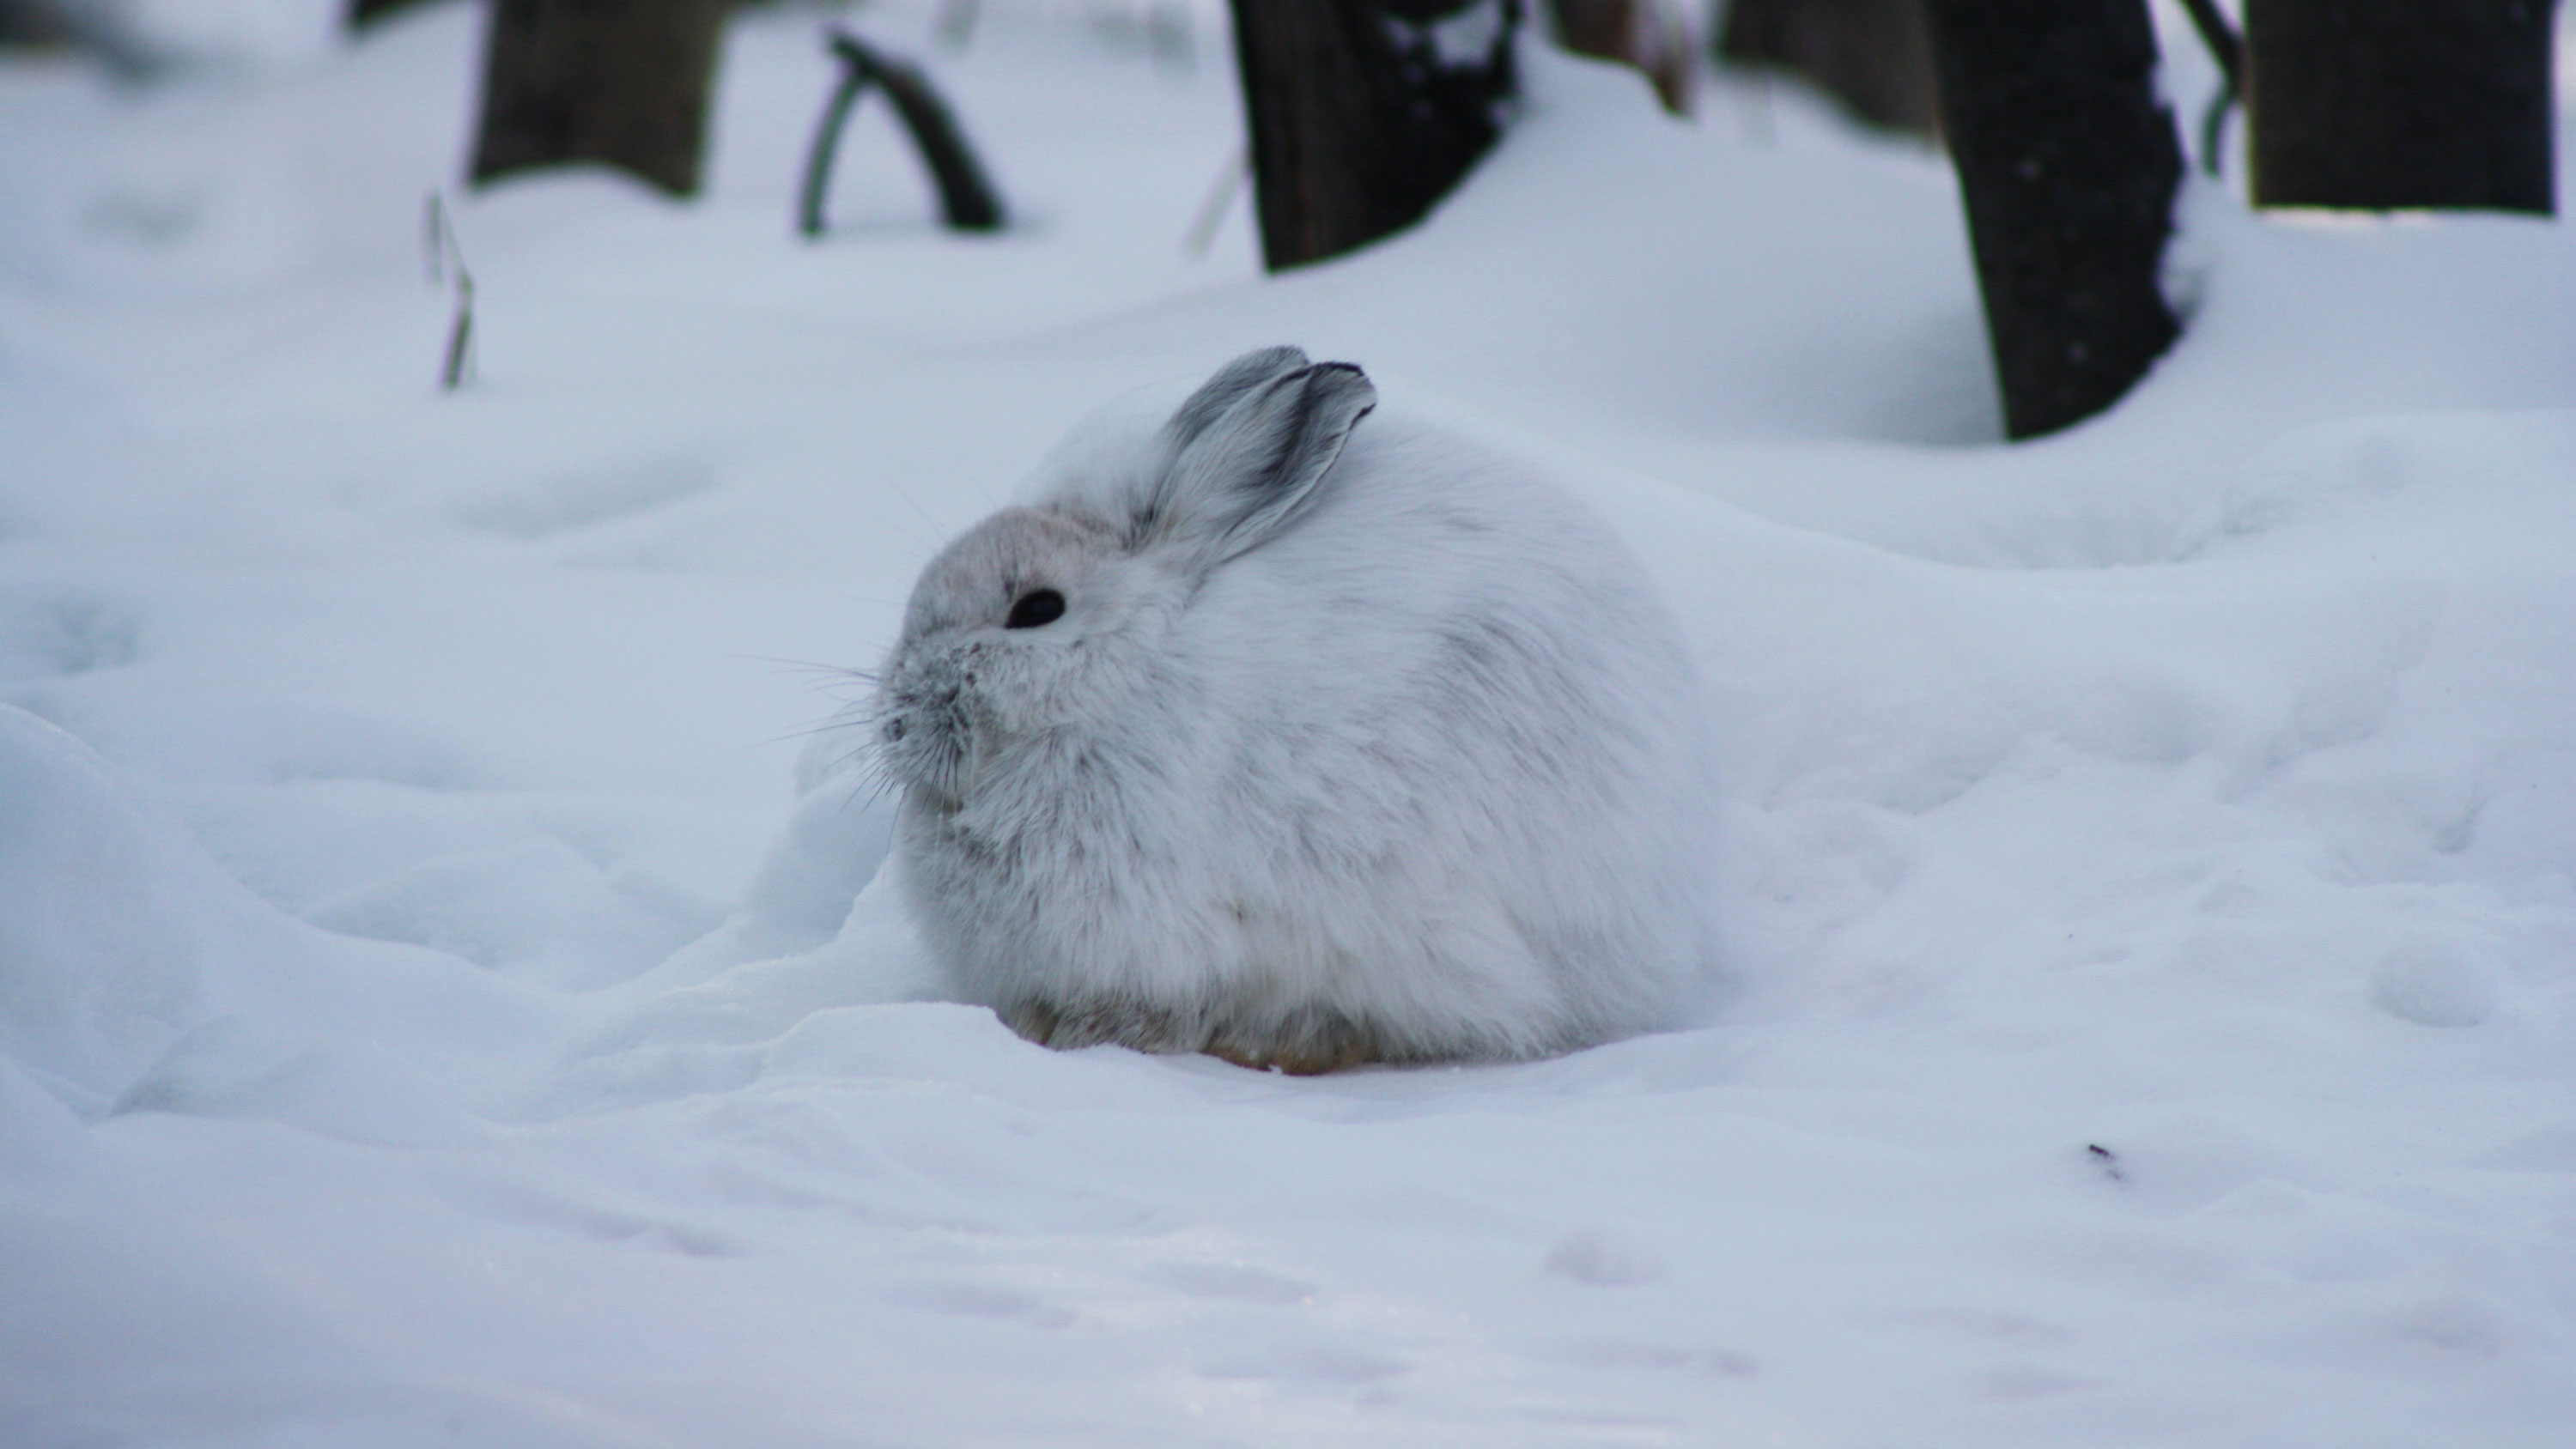 A snowshoe hare resting during a cold winter day